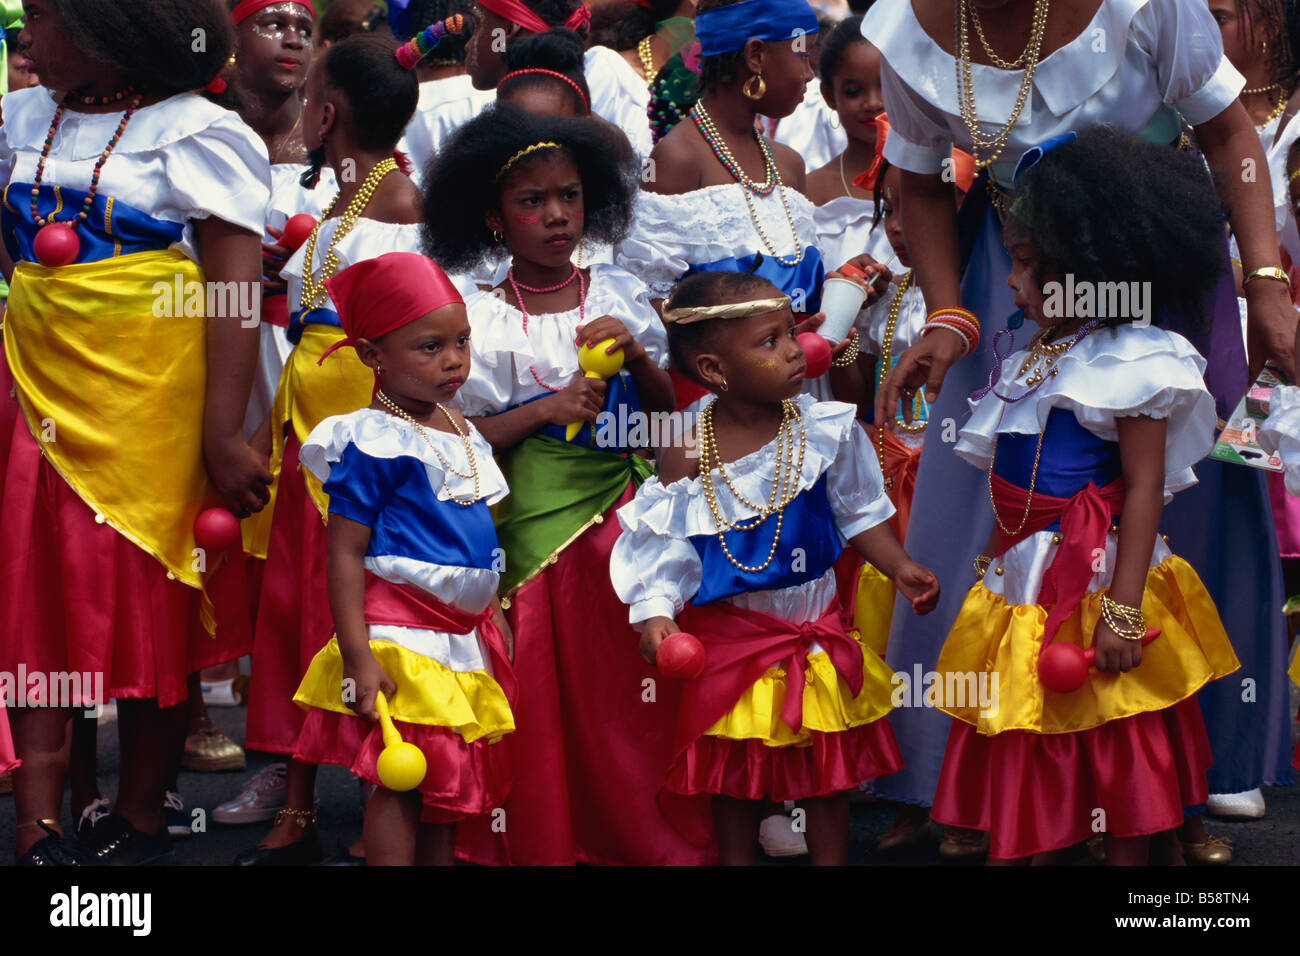 Caribbean People: Martinique Caribbean People Stock Photos & Martinique